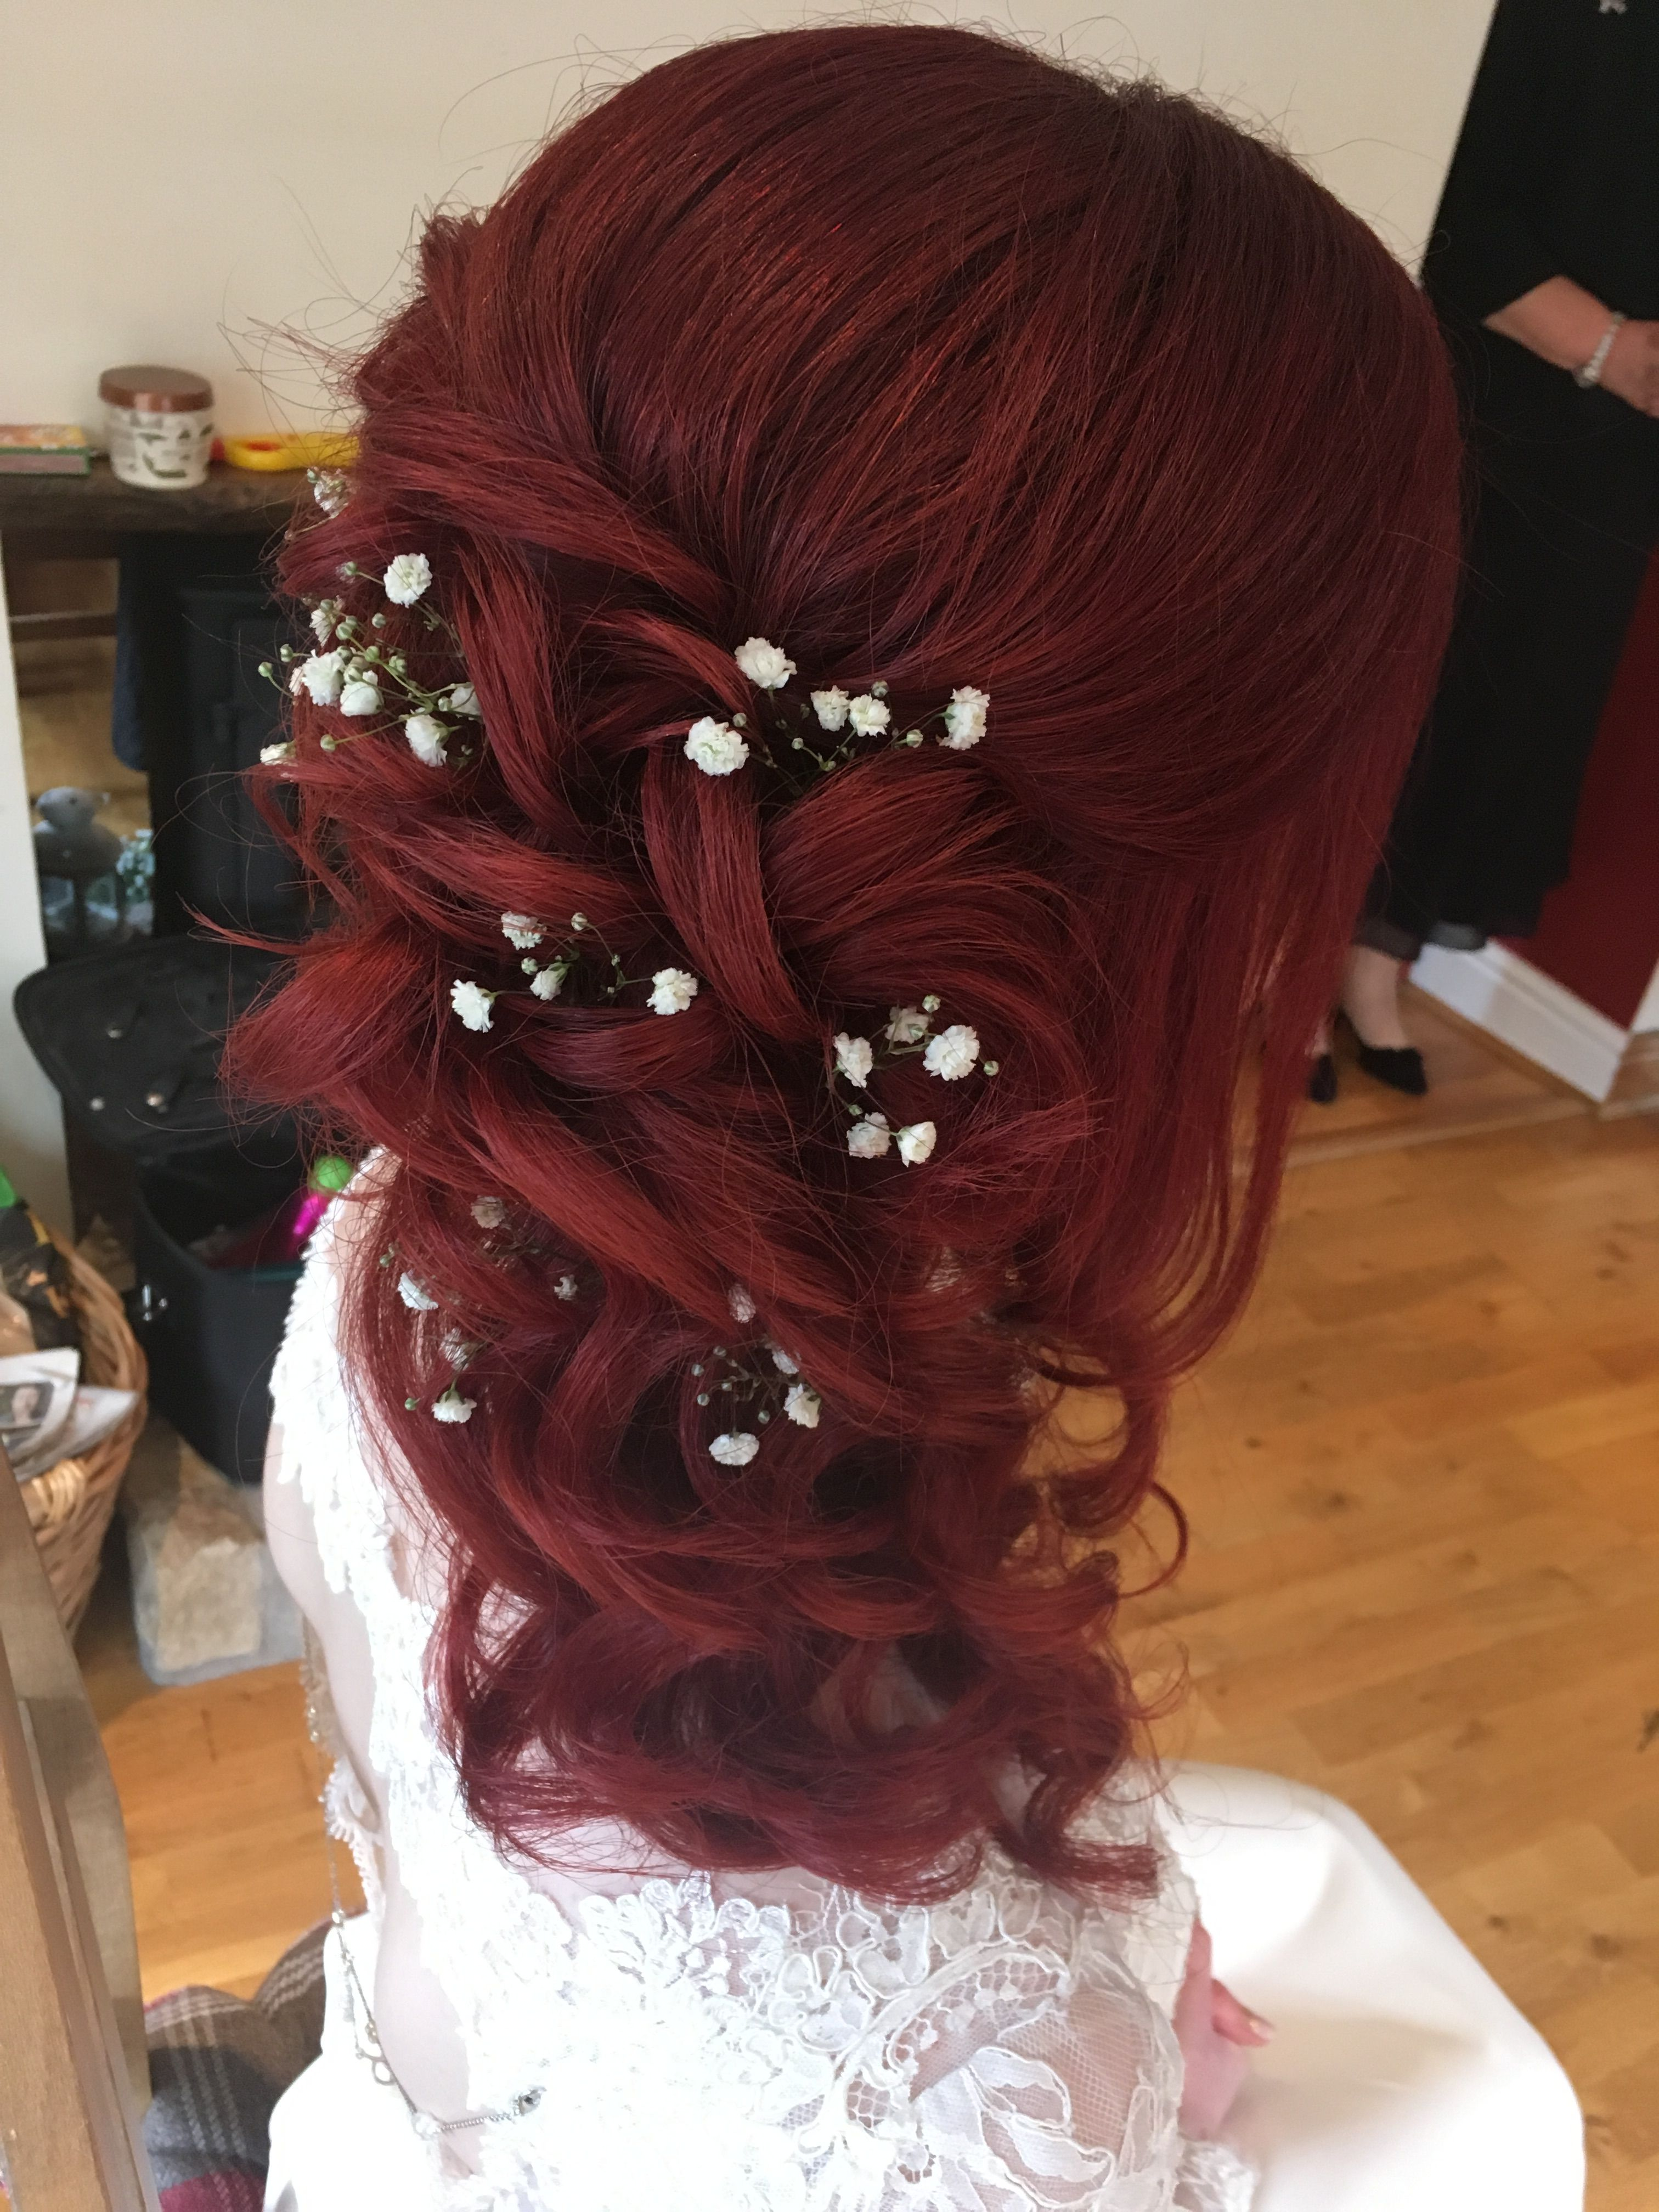 red hair curled one side hair style with gypsophila | hair